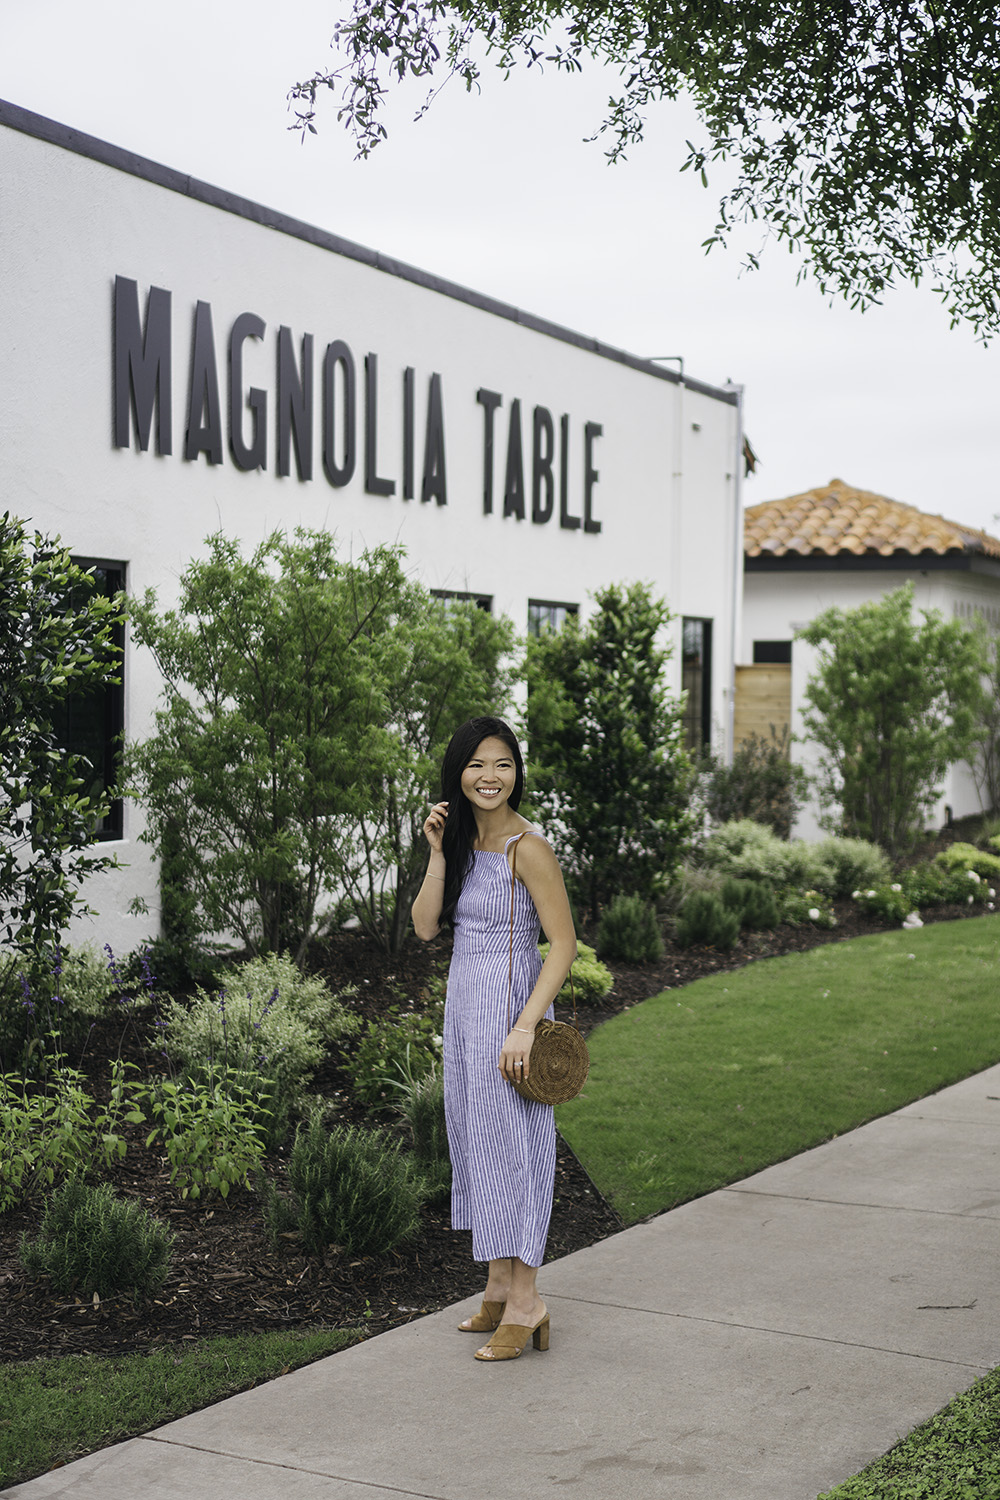 Visiting Magnolia Table in Waco, TX